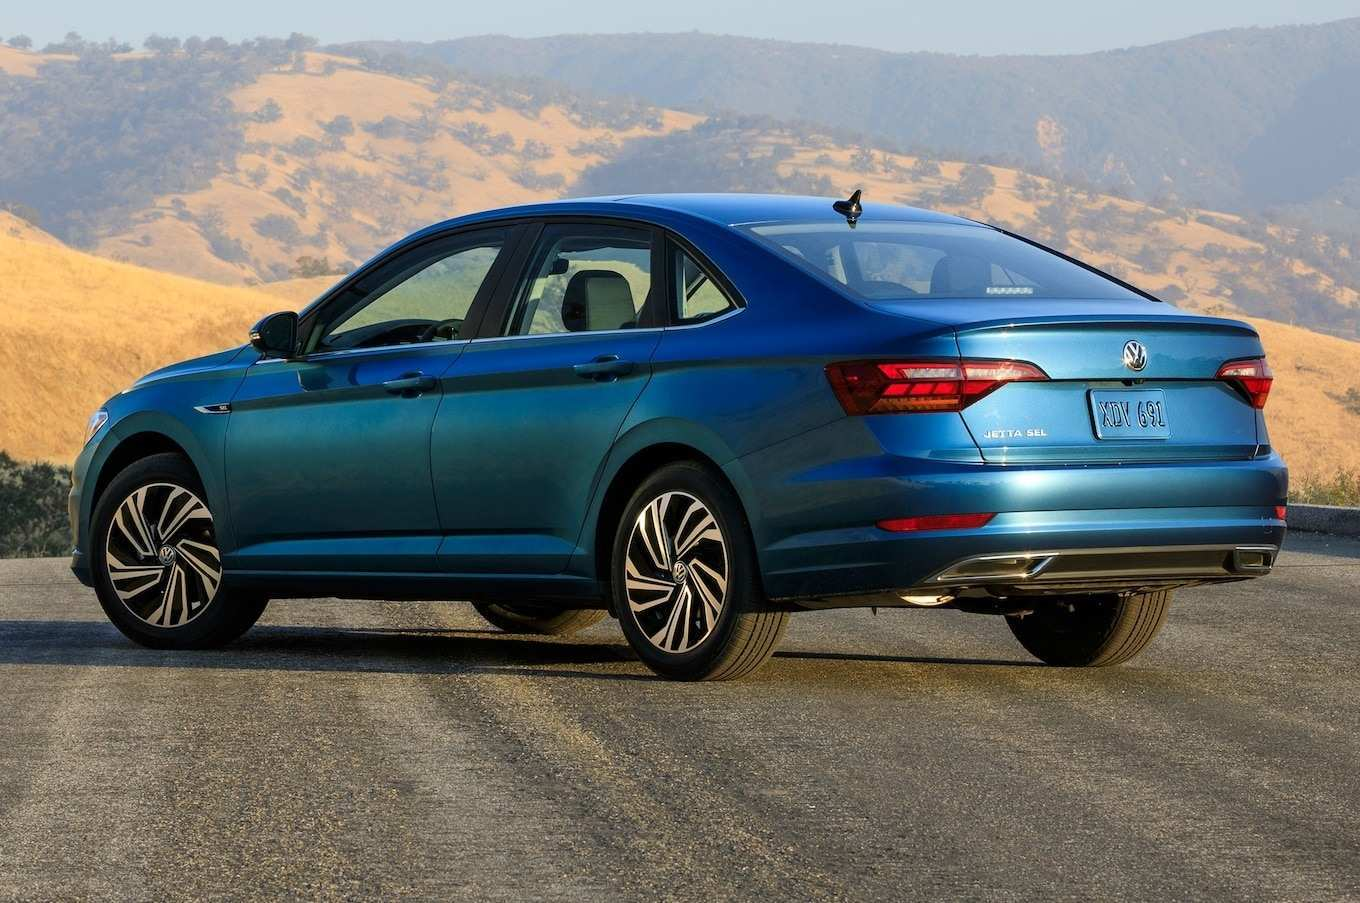 47 All New New Volkswagen Jetta Gli 2019 Redesign And Concept Prices by New Volkswagen Jetta Gli 2019 Redesign And Concept